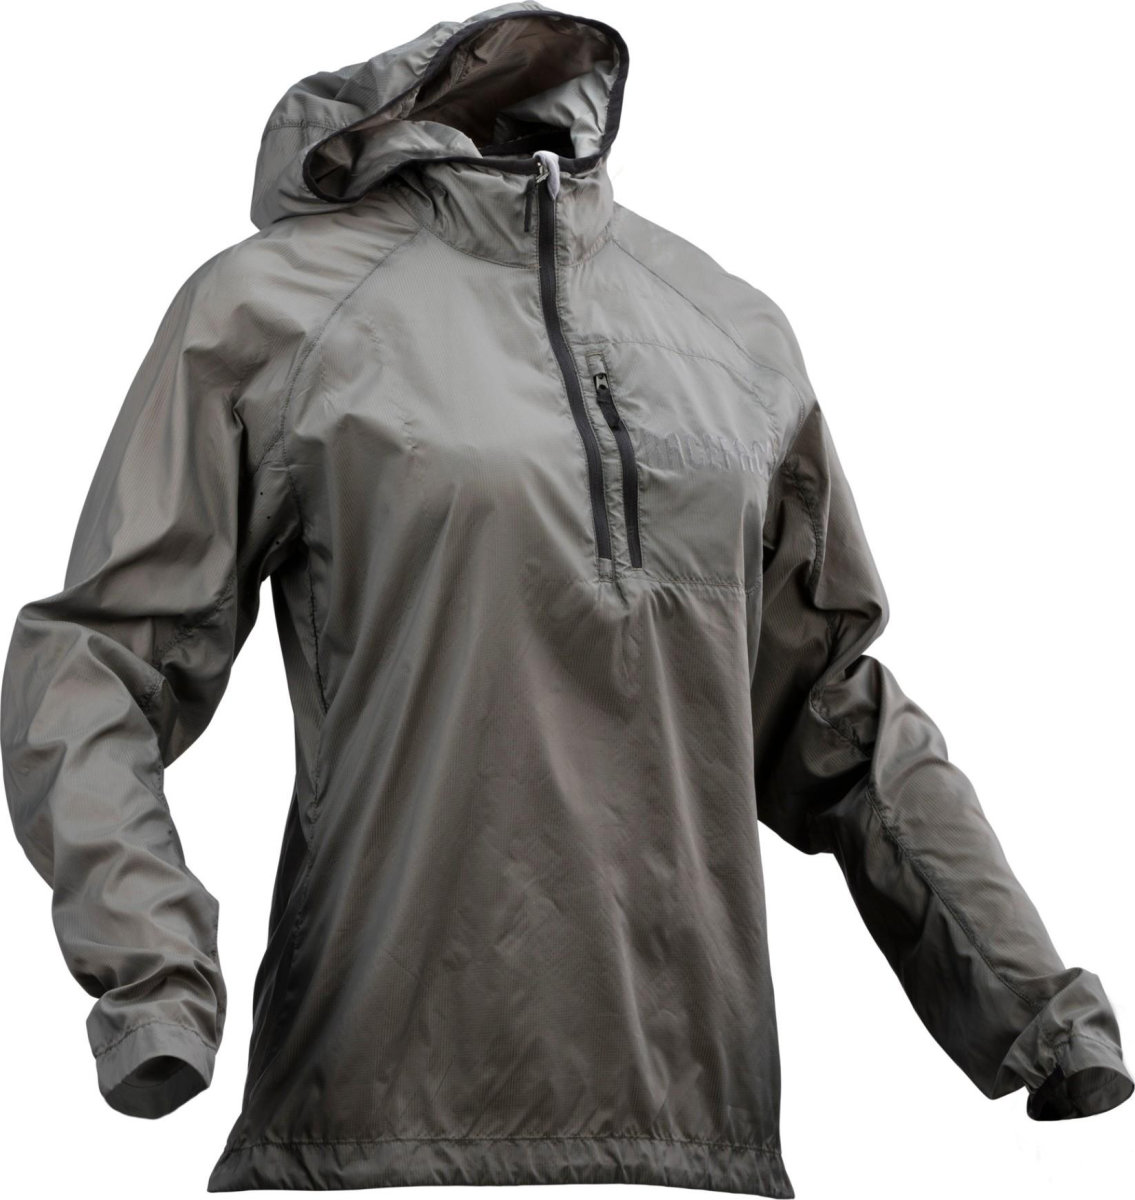 Куртка RaceFace WMNS Nano packable jacket grey KA89401S